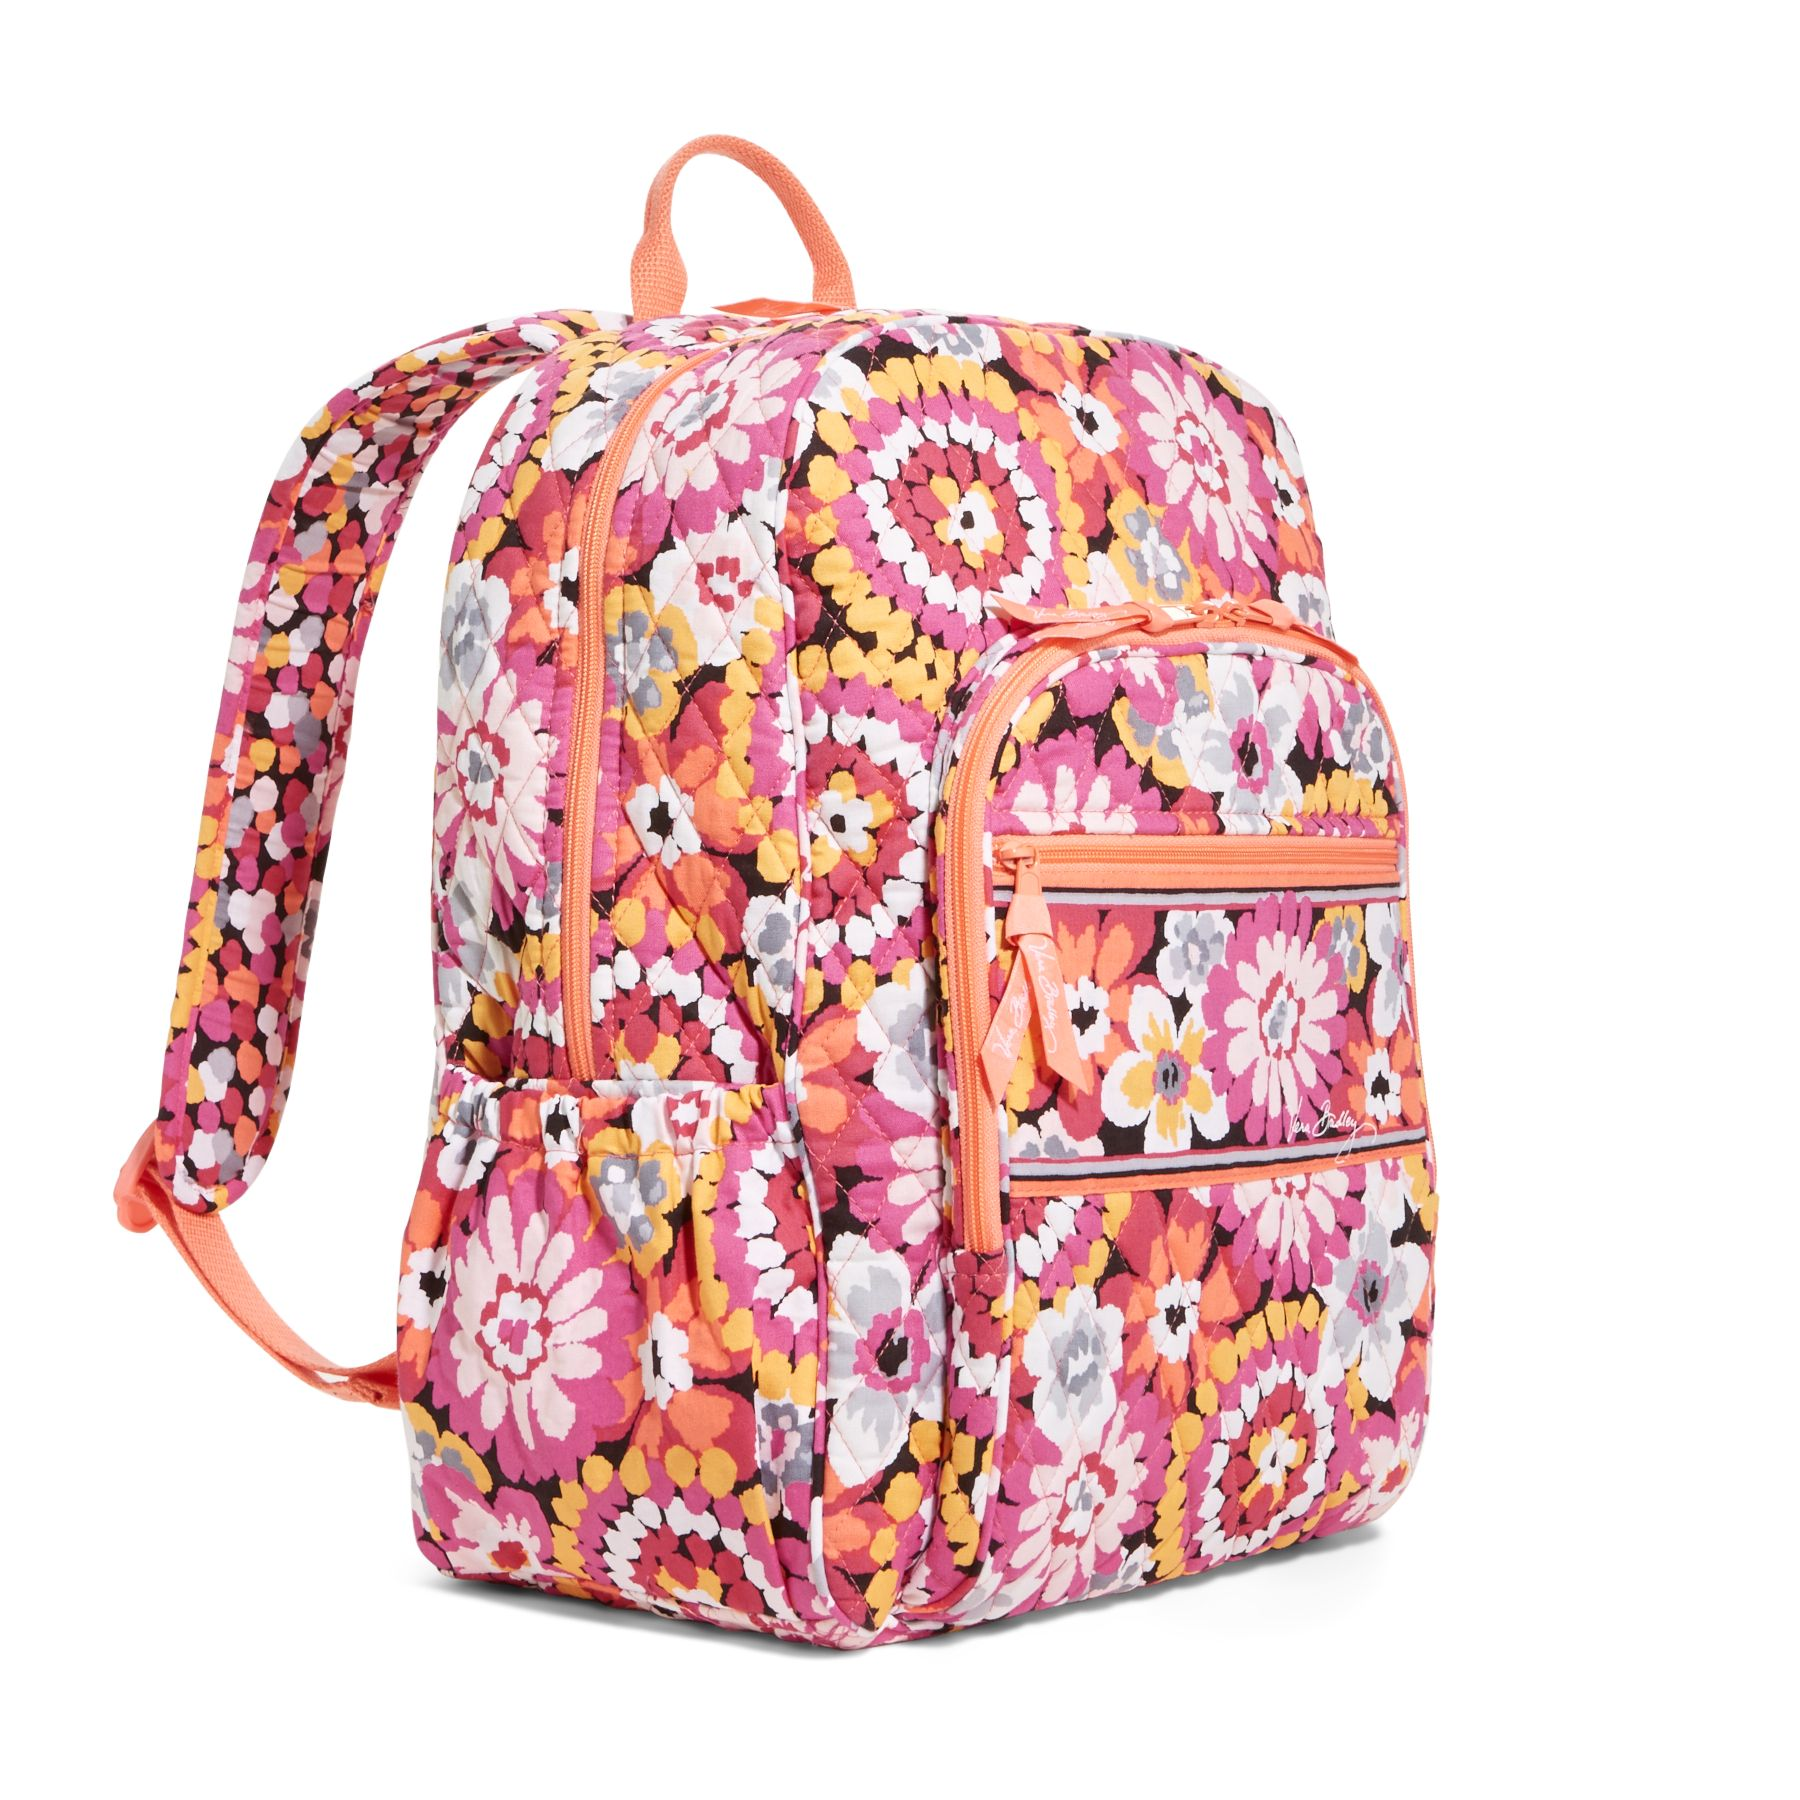 Vera Bradley's designer purses, wallets, backpacks, accessories and more are fashionable and functional. Their attention to detail paired with their dedication to .